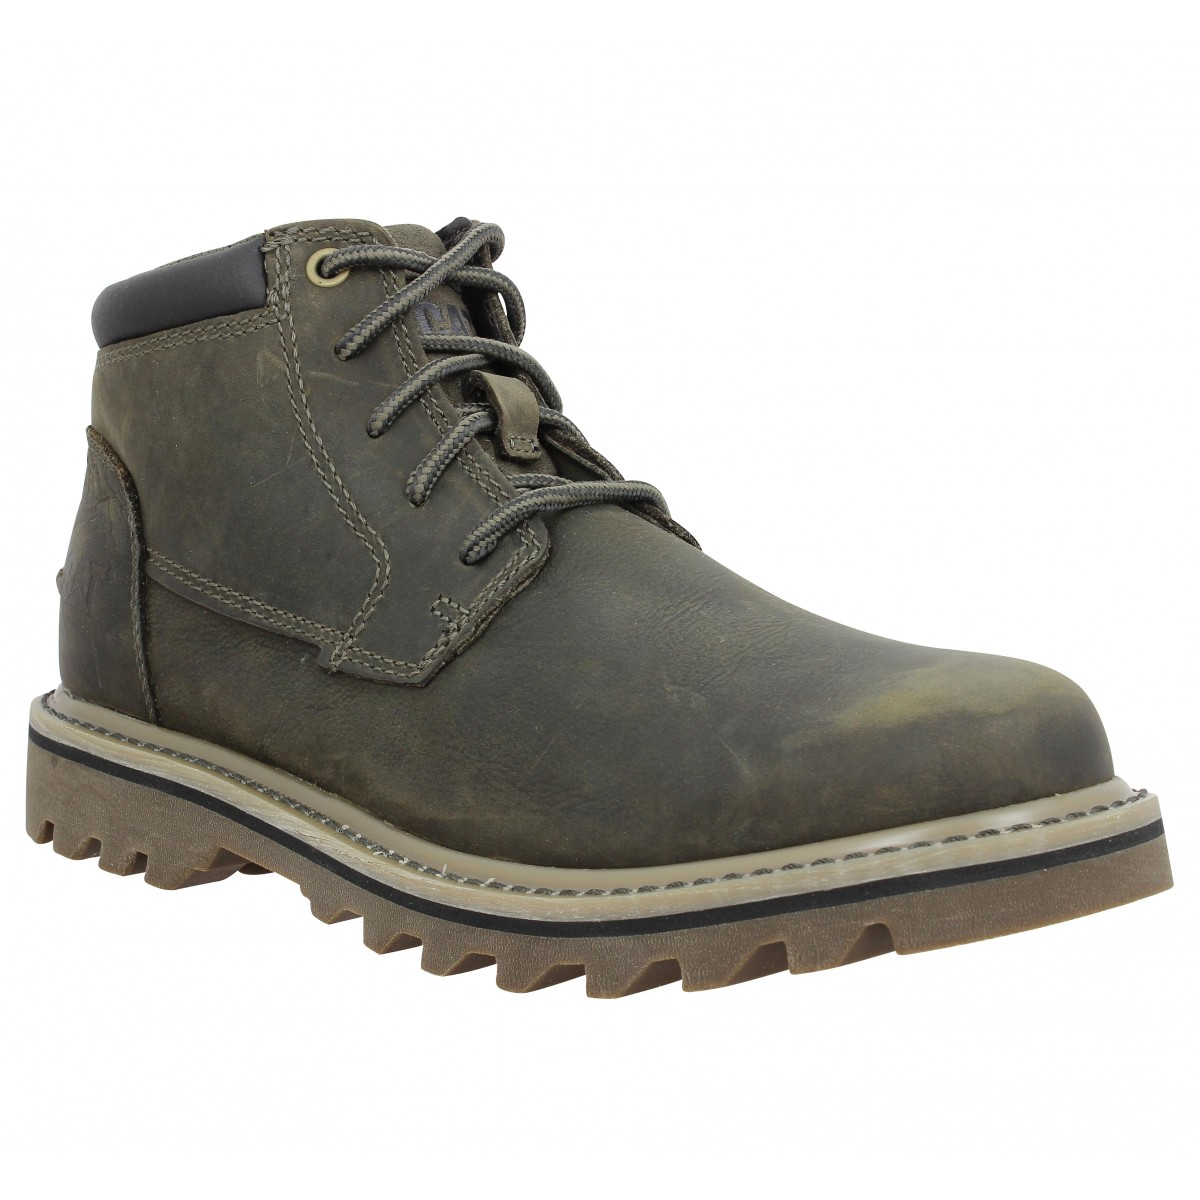 Cuir Homme Caterpillar Doubleday Caterpillar Bungee Doubleday SVjqULMpzG